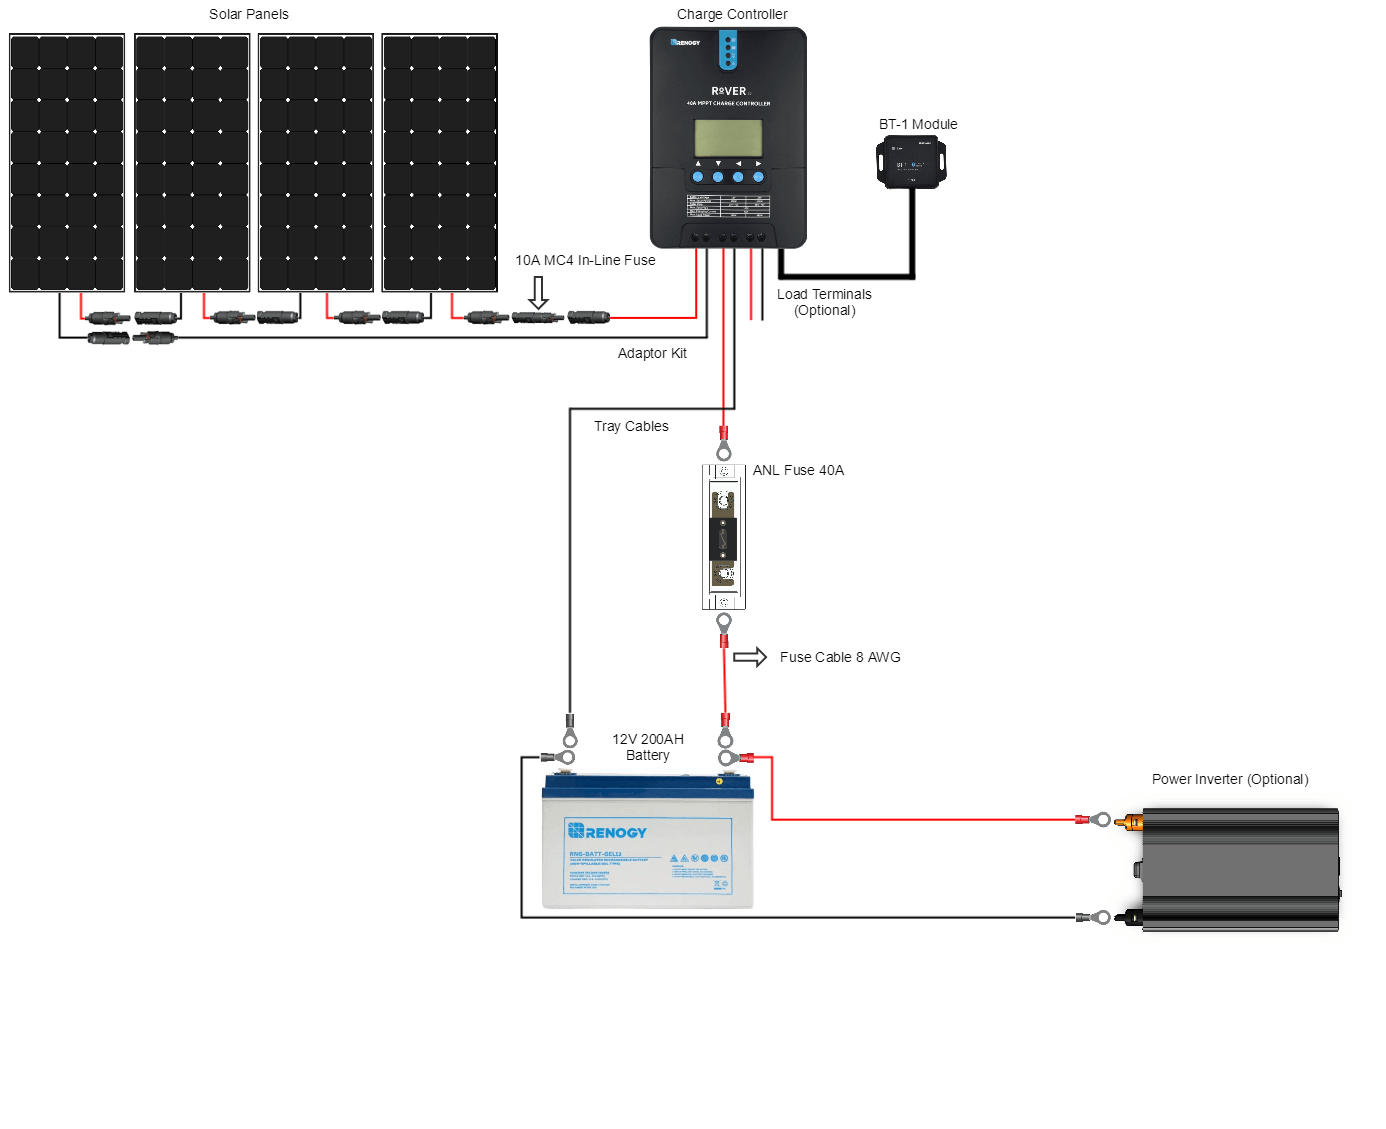 24 Volt Solar Panel Wiring Diagram